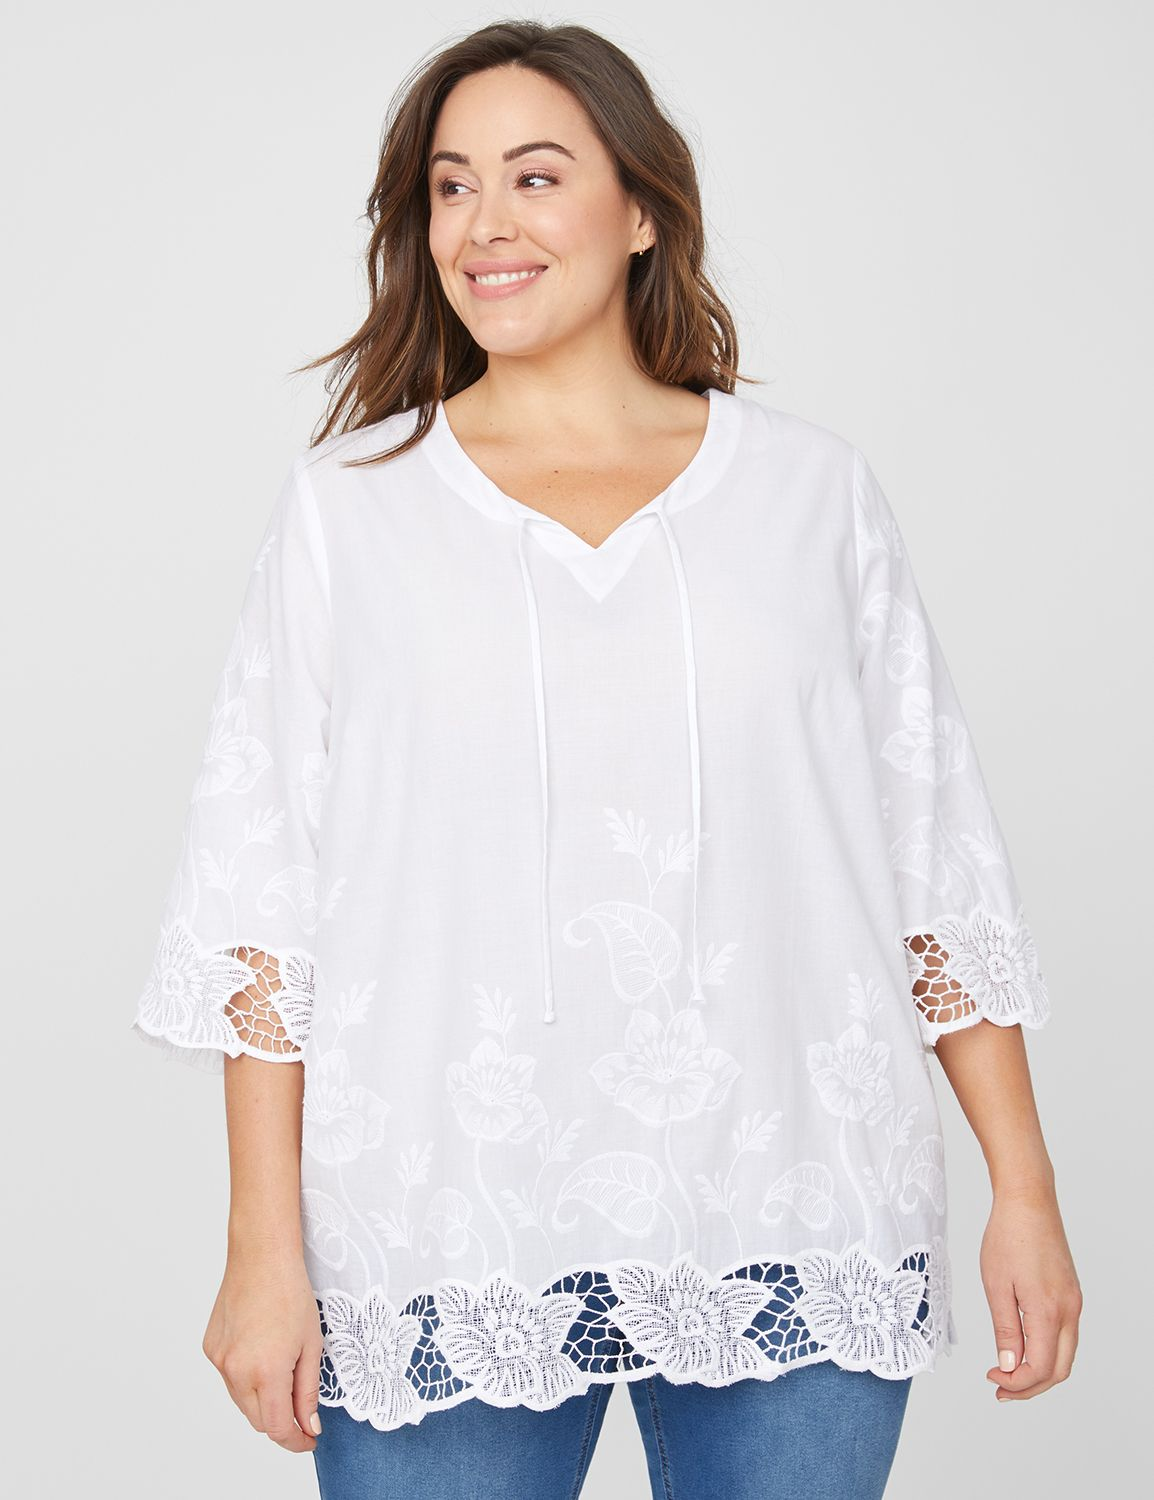 Springs Resort Peasant Top 1091212 Nuance Embroidered Peasant MP-300105869